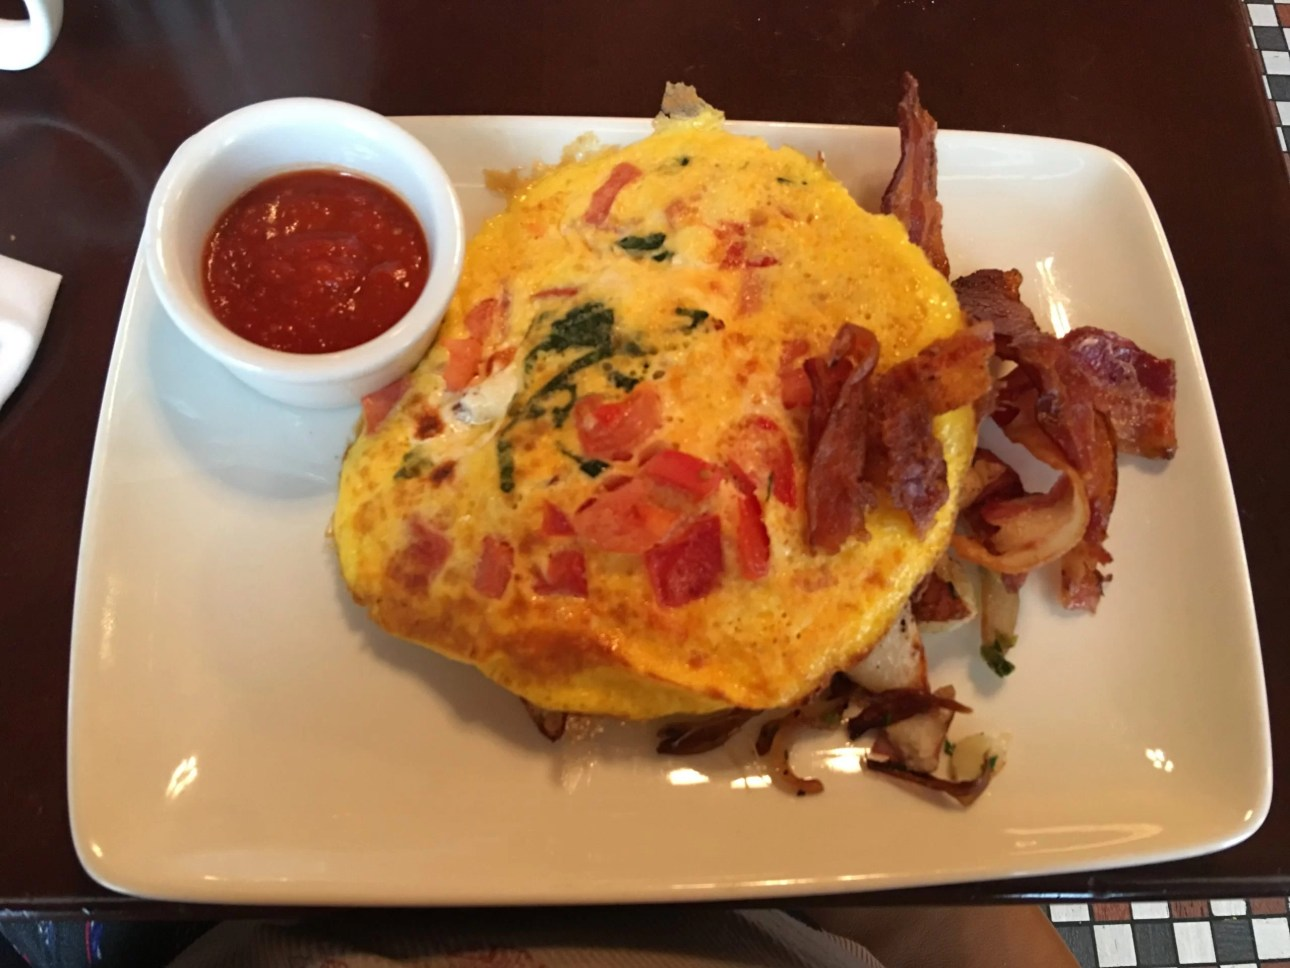 Tangled eggs, Trattoria al Forno, Walt Disney World's Bon Voyage Breakfast